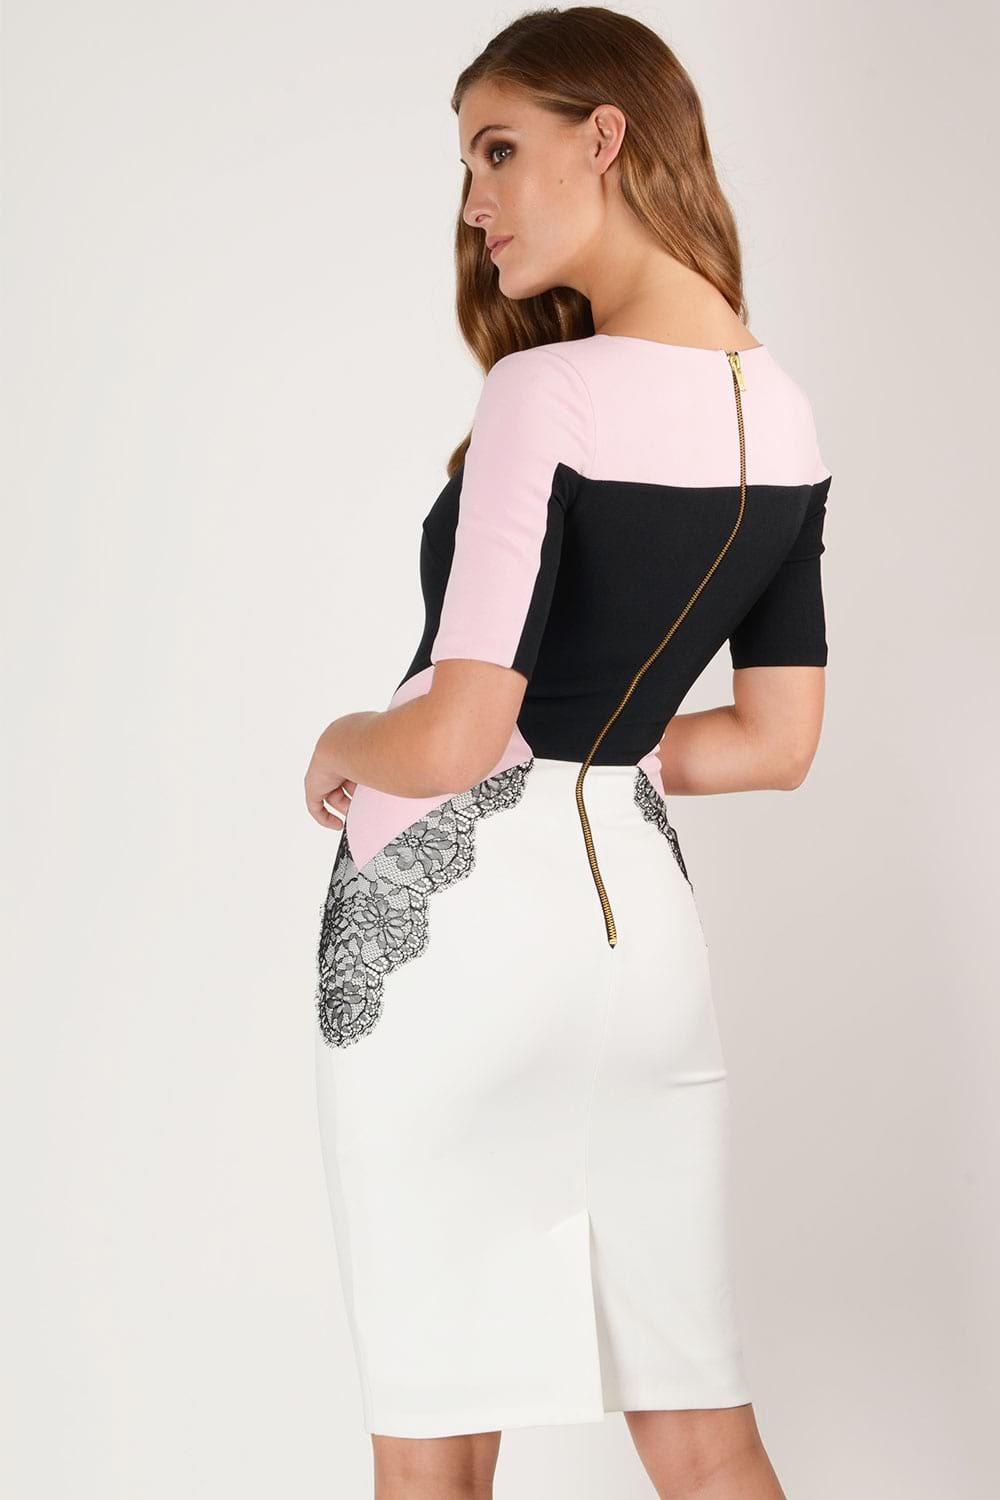 Hybrid Fashion Jamie 1258 Colourblock Pencil Dress